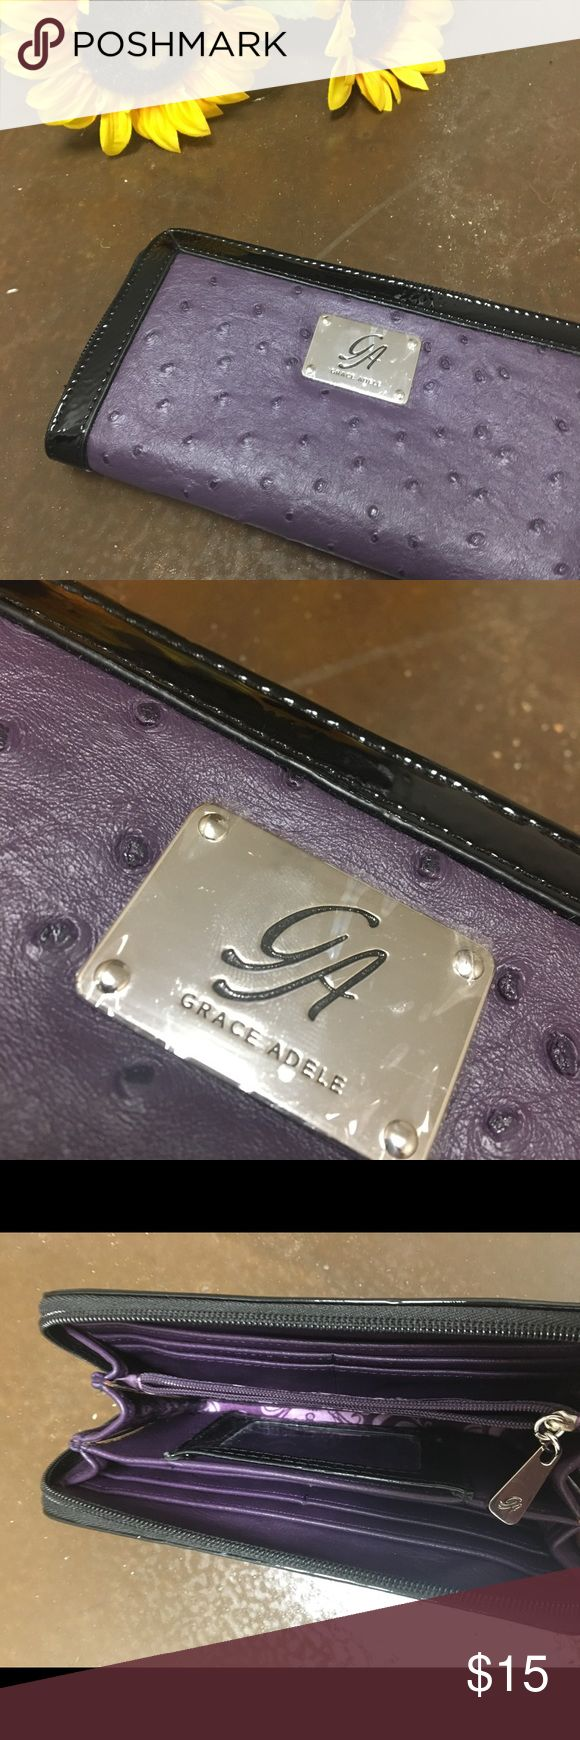 Grace Adele wallet Purple Grace Adele wallet Grace Adele Bags Wallets